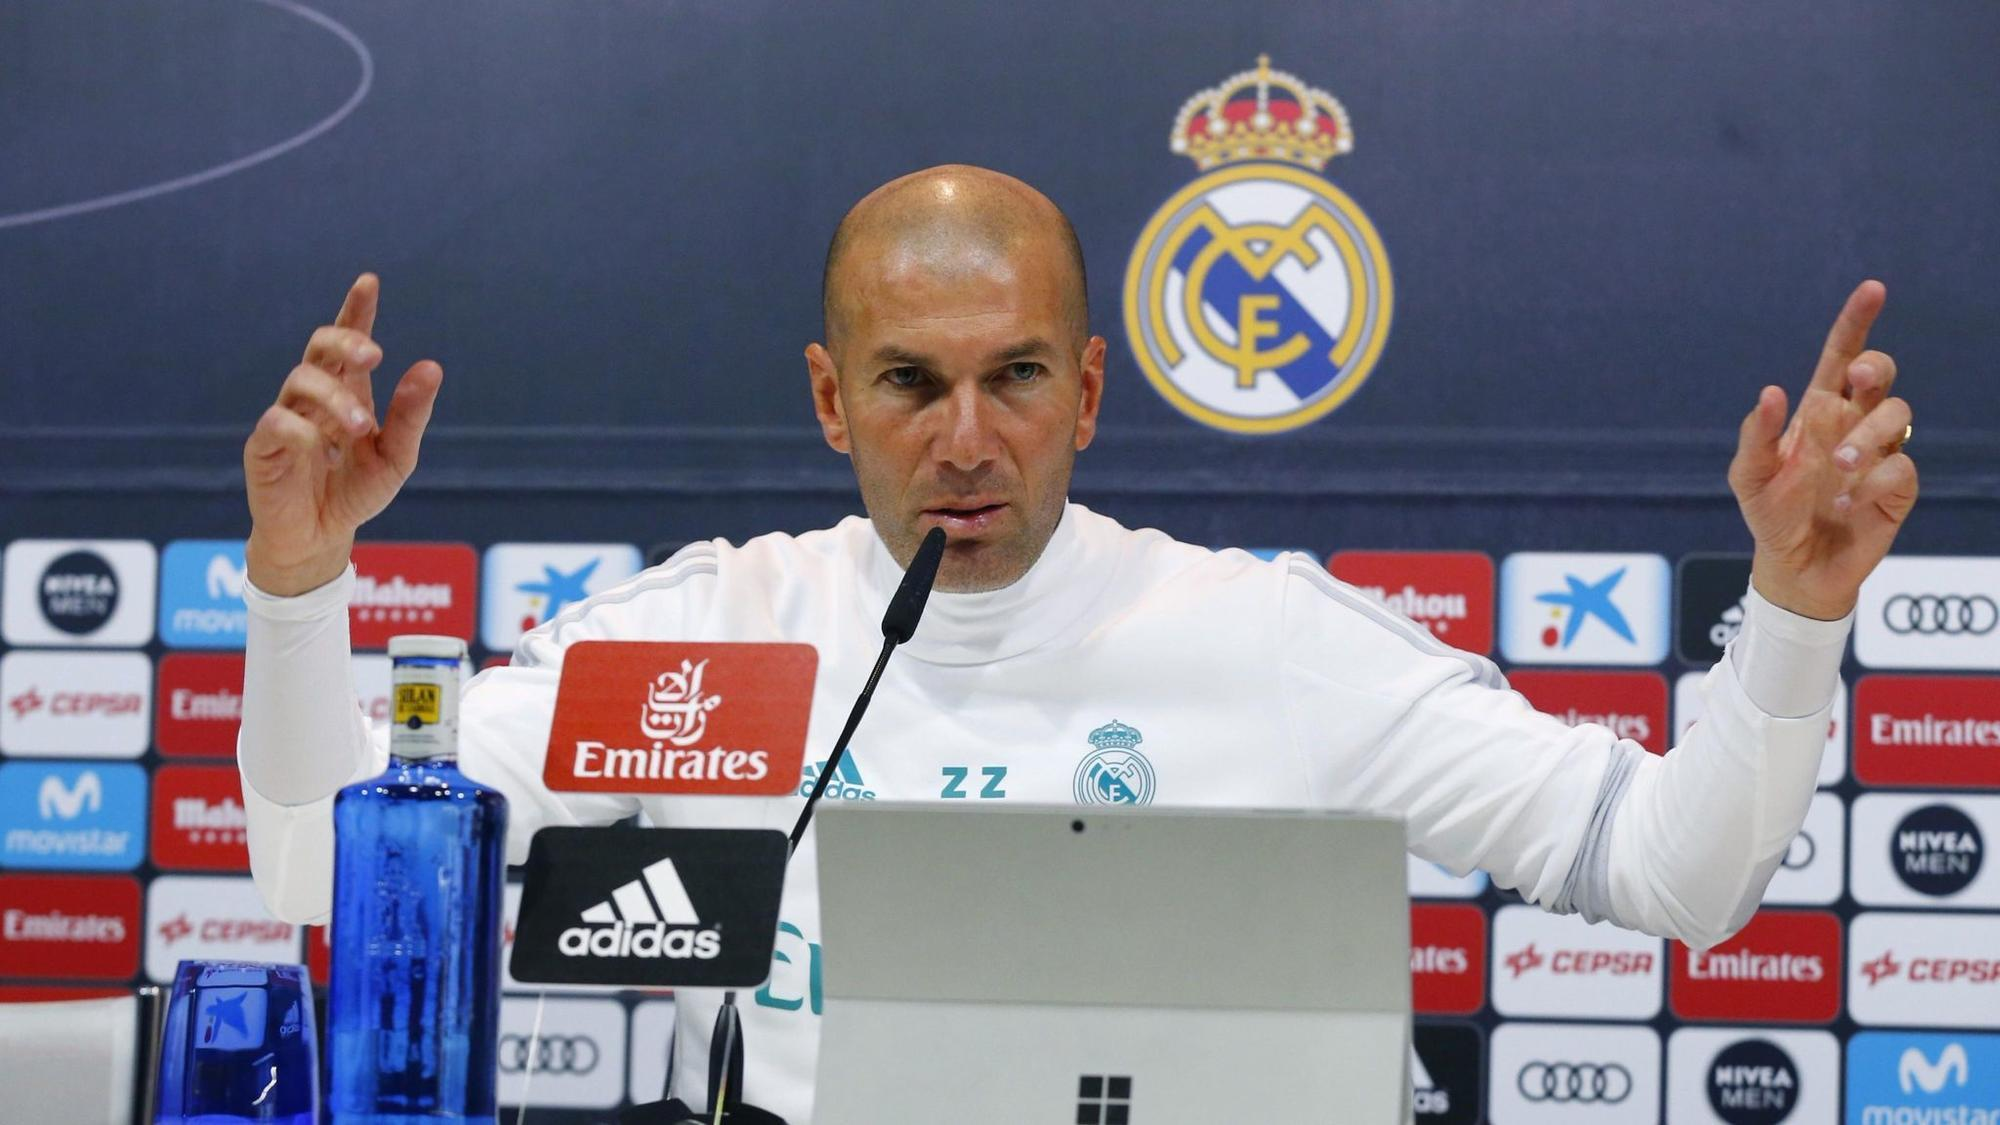 http://www.trbimg.com/img-5a54ebce/turbine/ct-90mins-with-words-zidane-tries-to-get-real-madrid-back-on-track-20180109